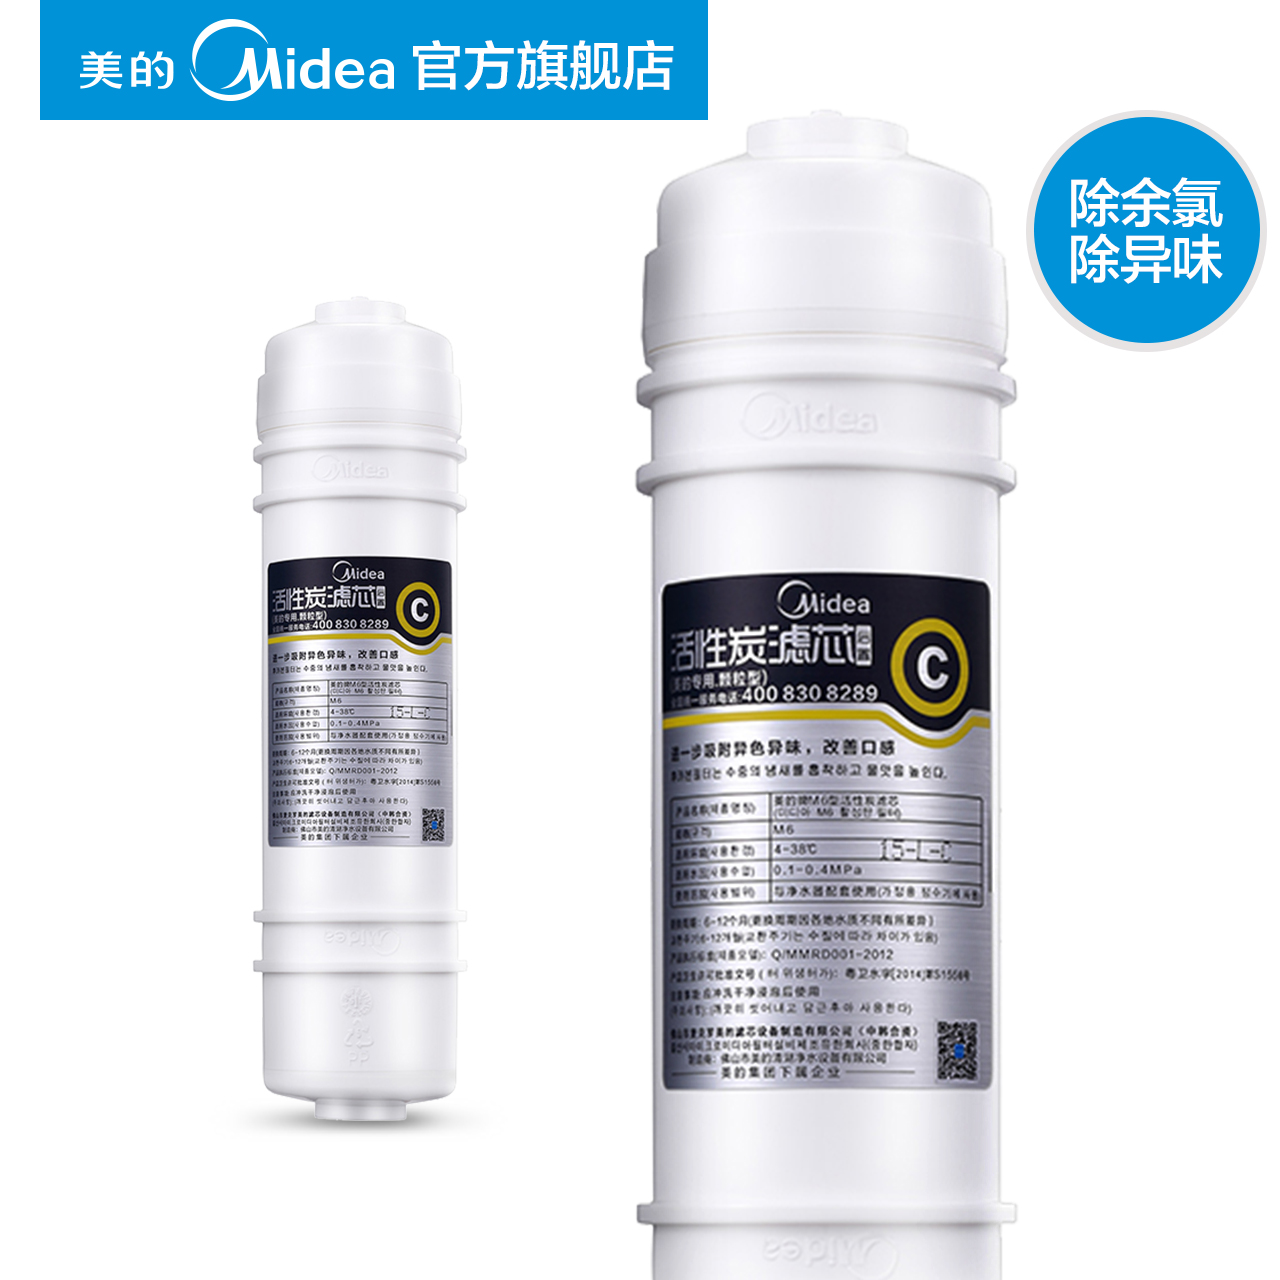 [post activated carbon filter] beautiful M6 (C) -P026 water purifier filter 12-18 months life